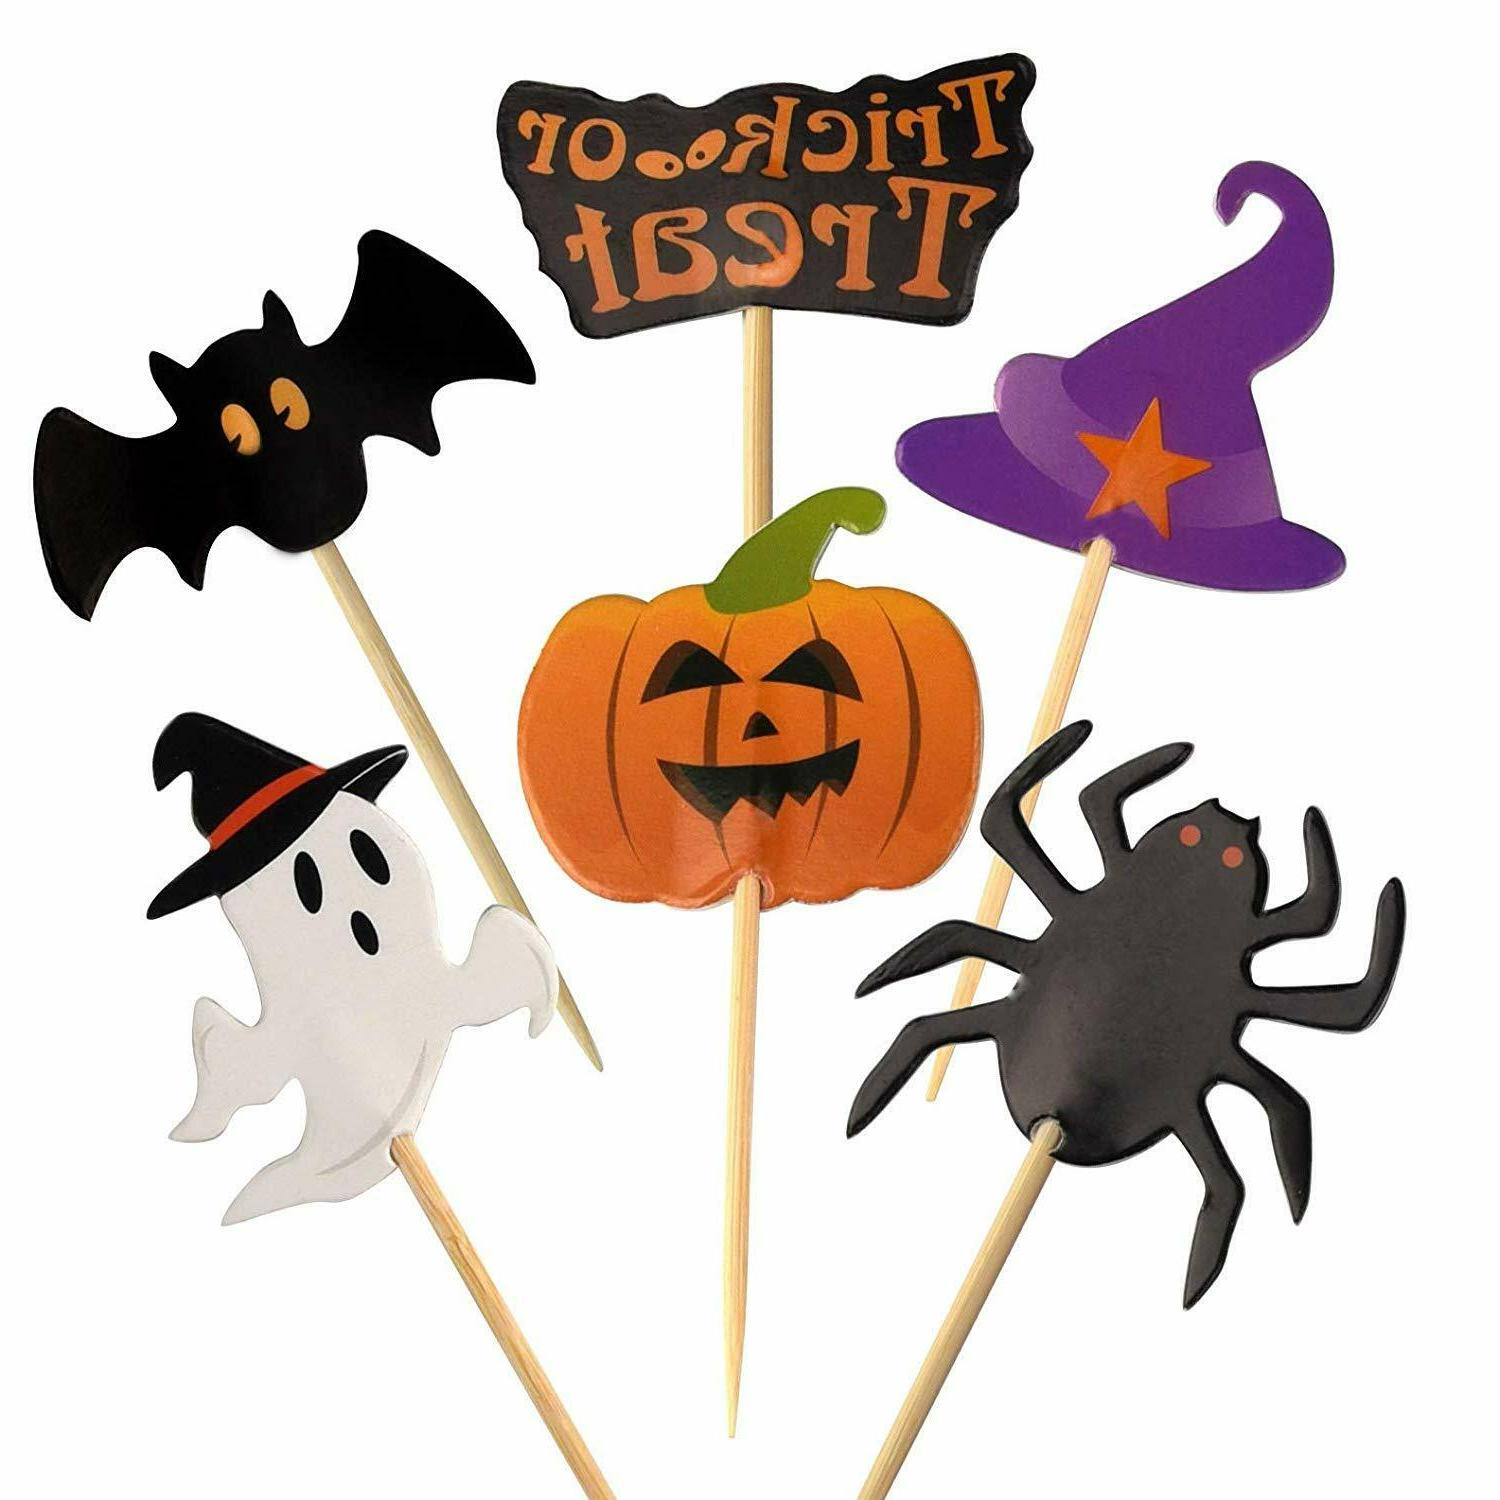 60 pieces halloween cupcake toothpick toppers flags